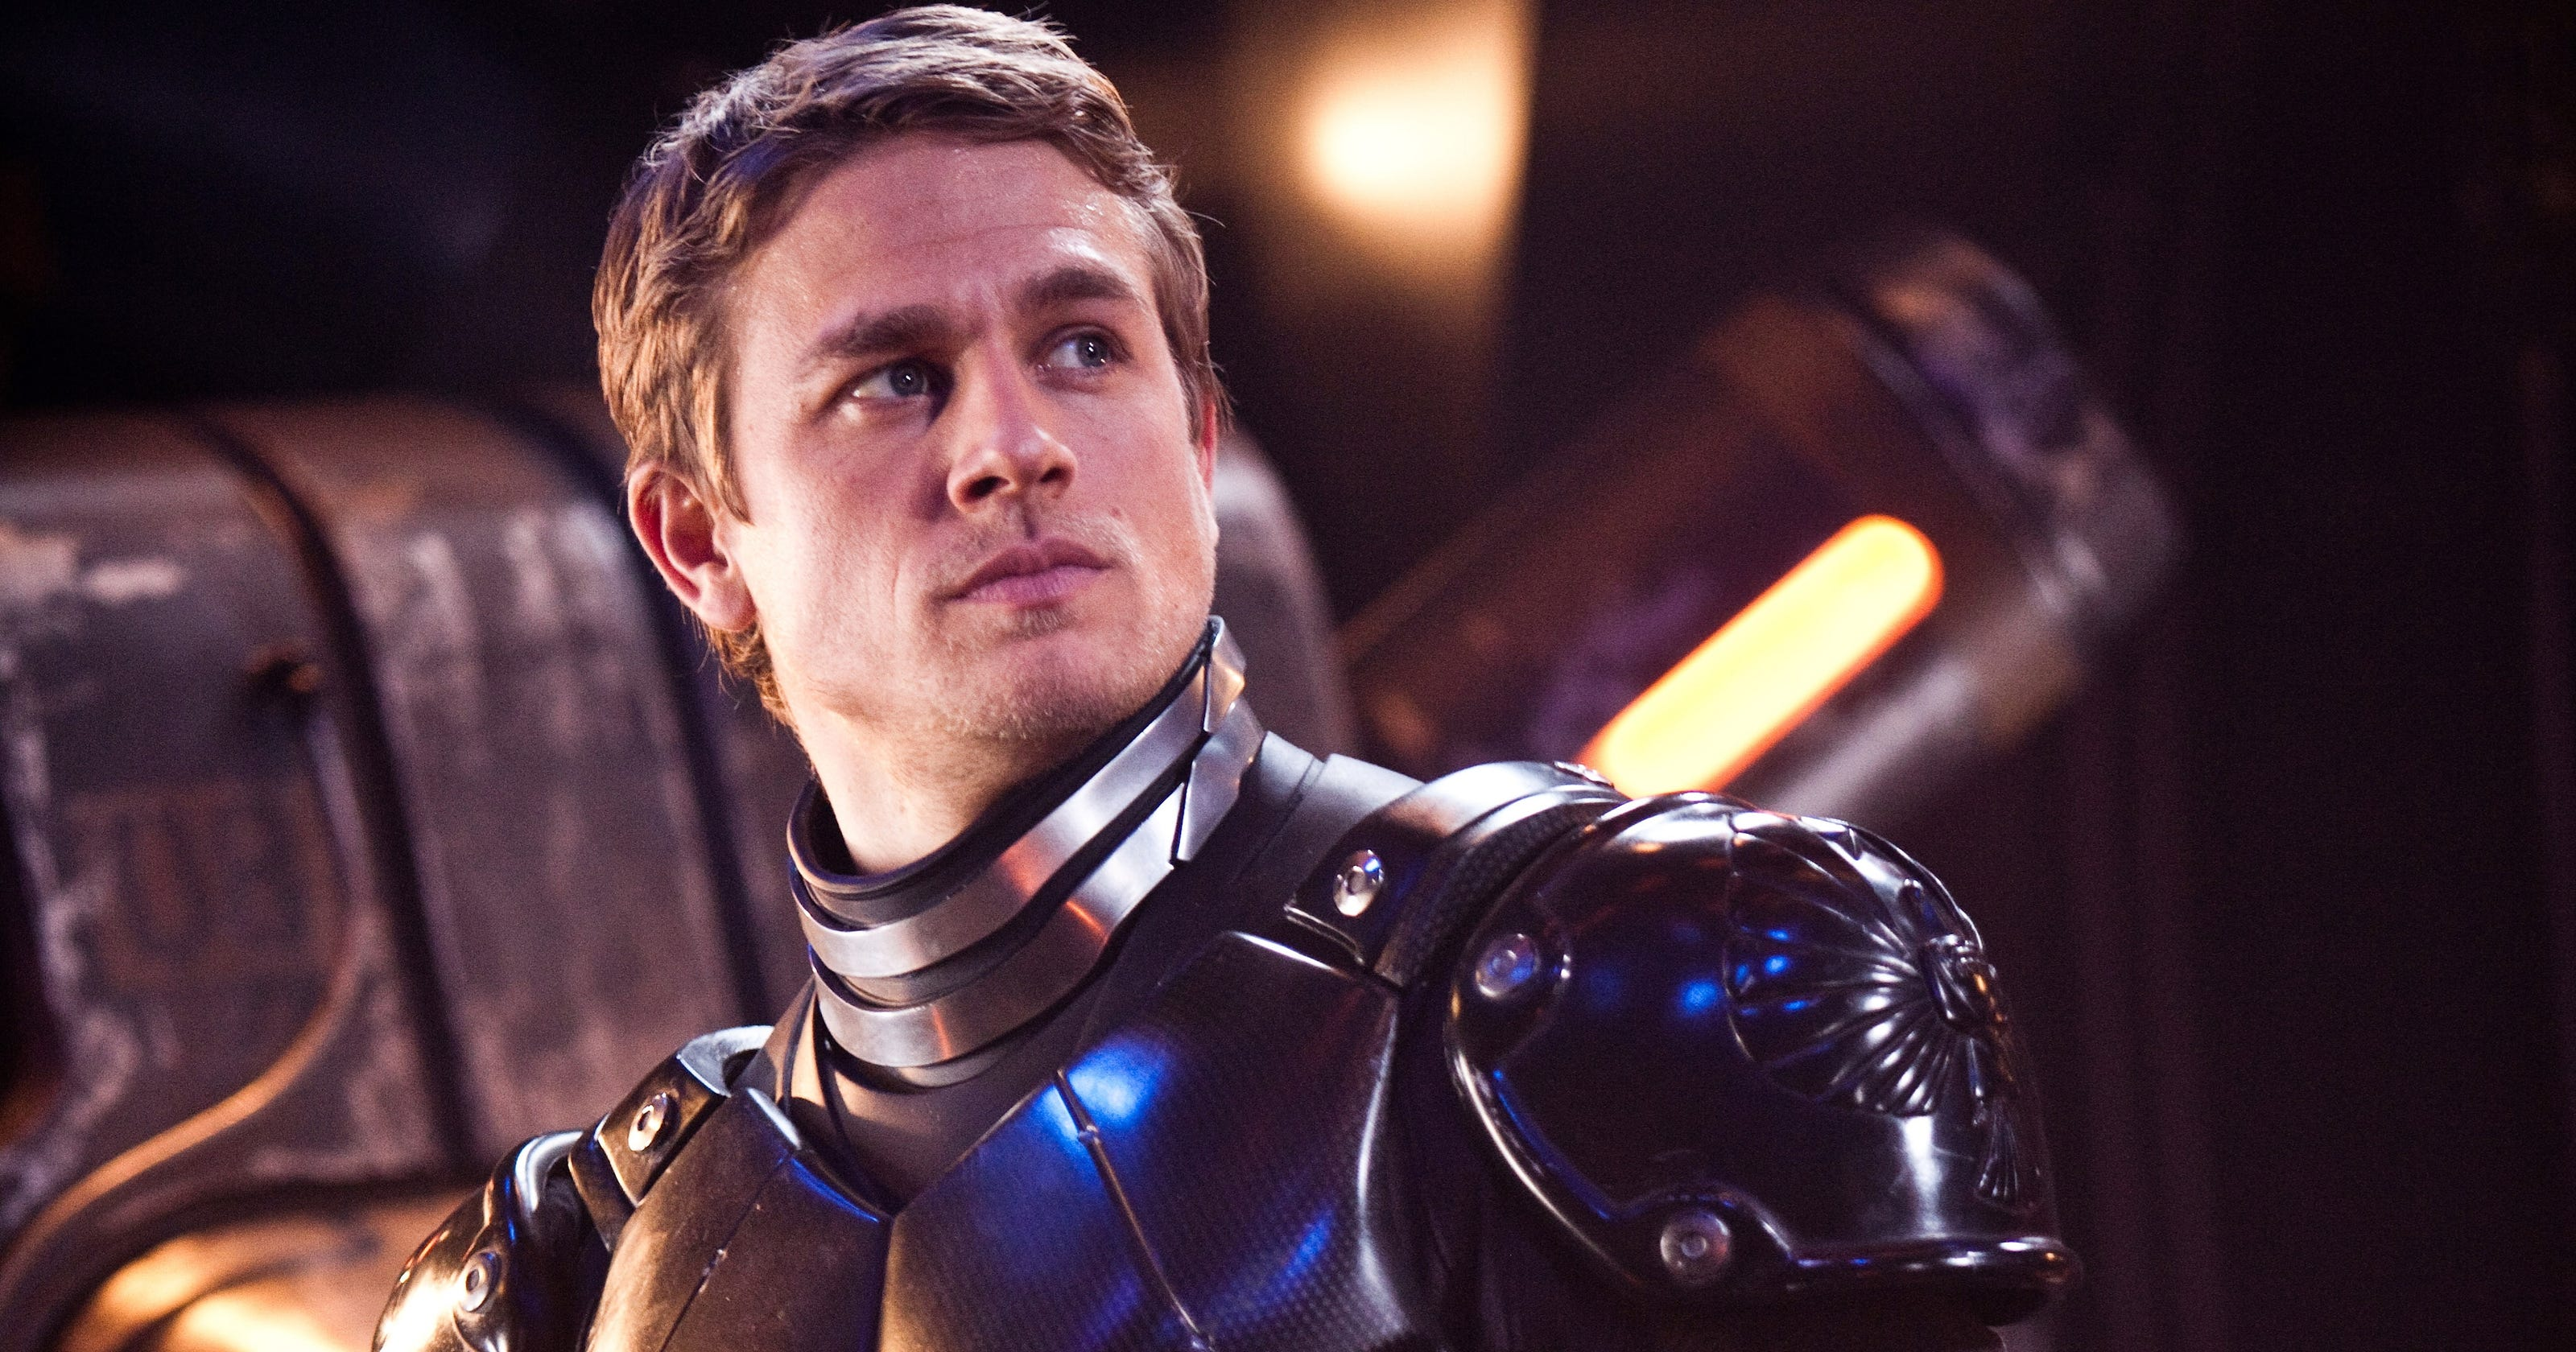 Charlie Hunnam brings swagger to world of 'Pacific Rim' Pacific Rim Cast